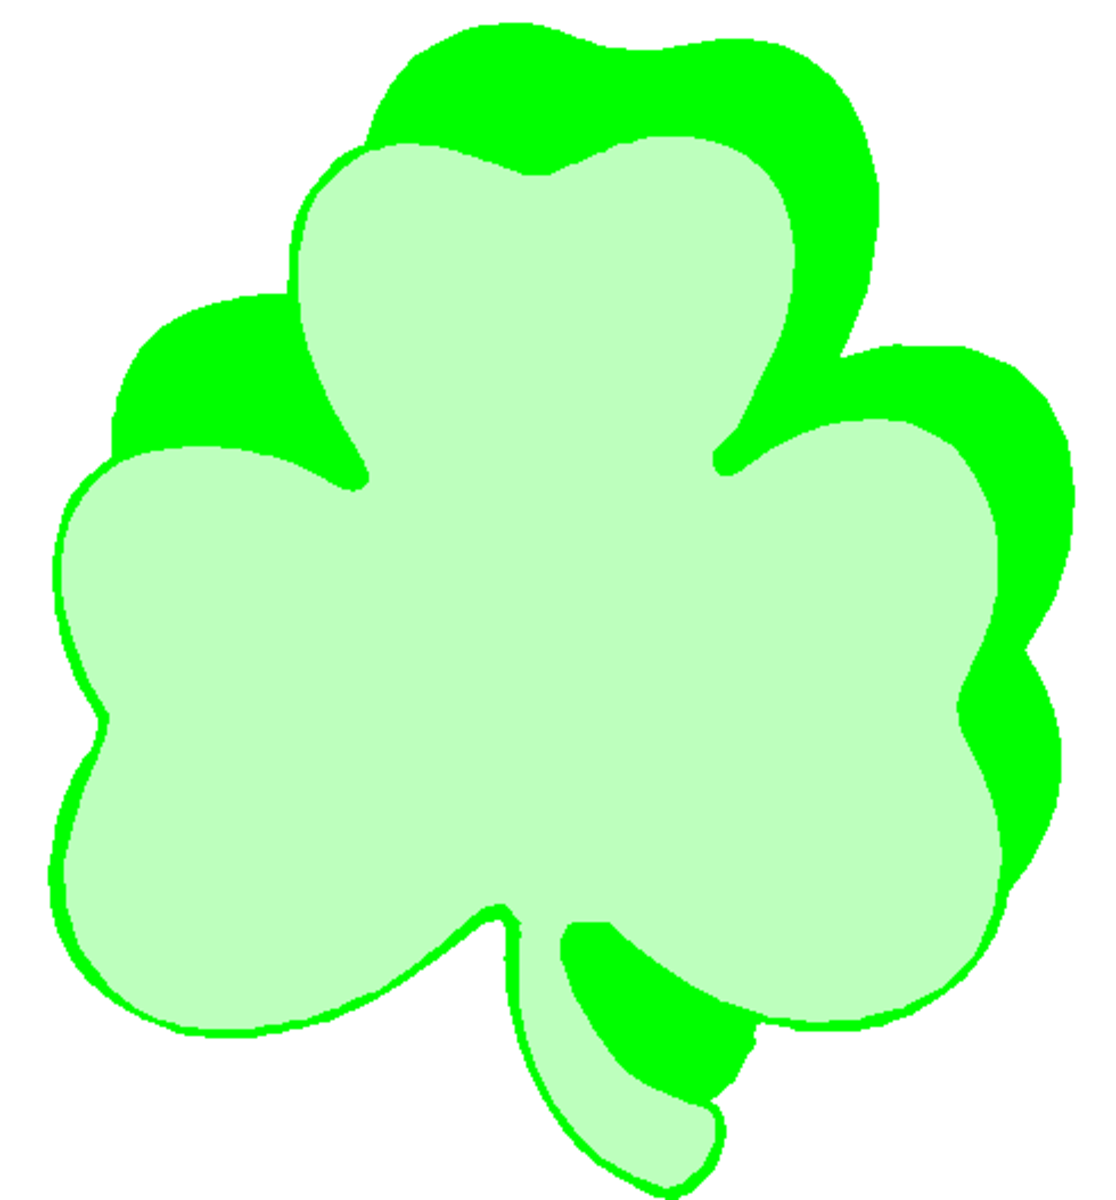 Double Shamrock Graphic